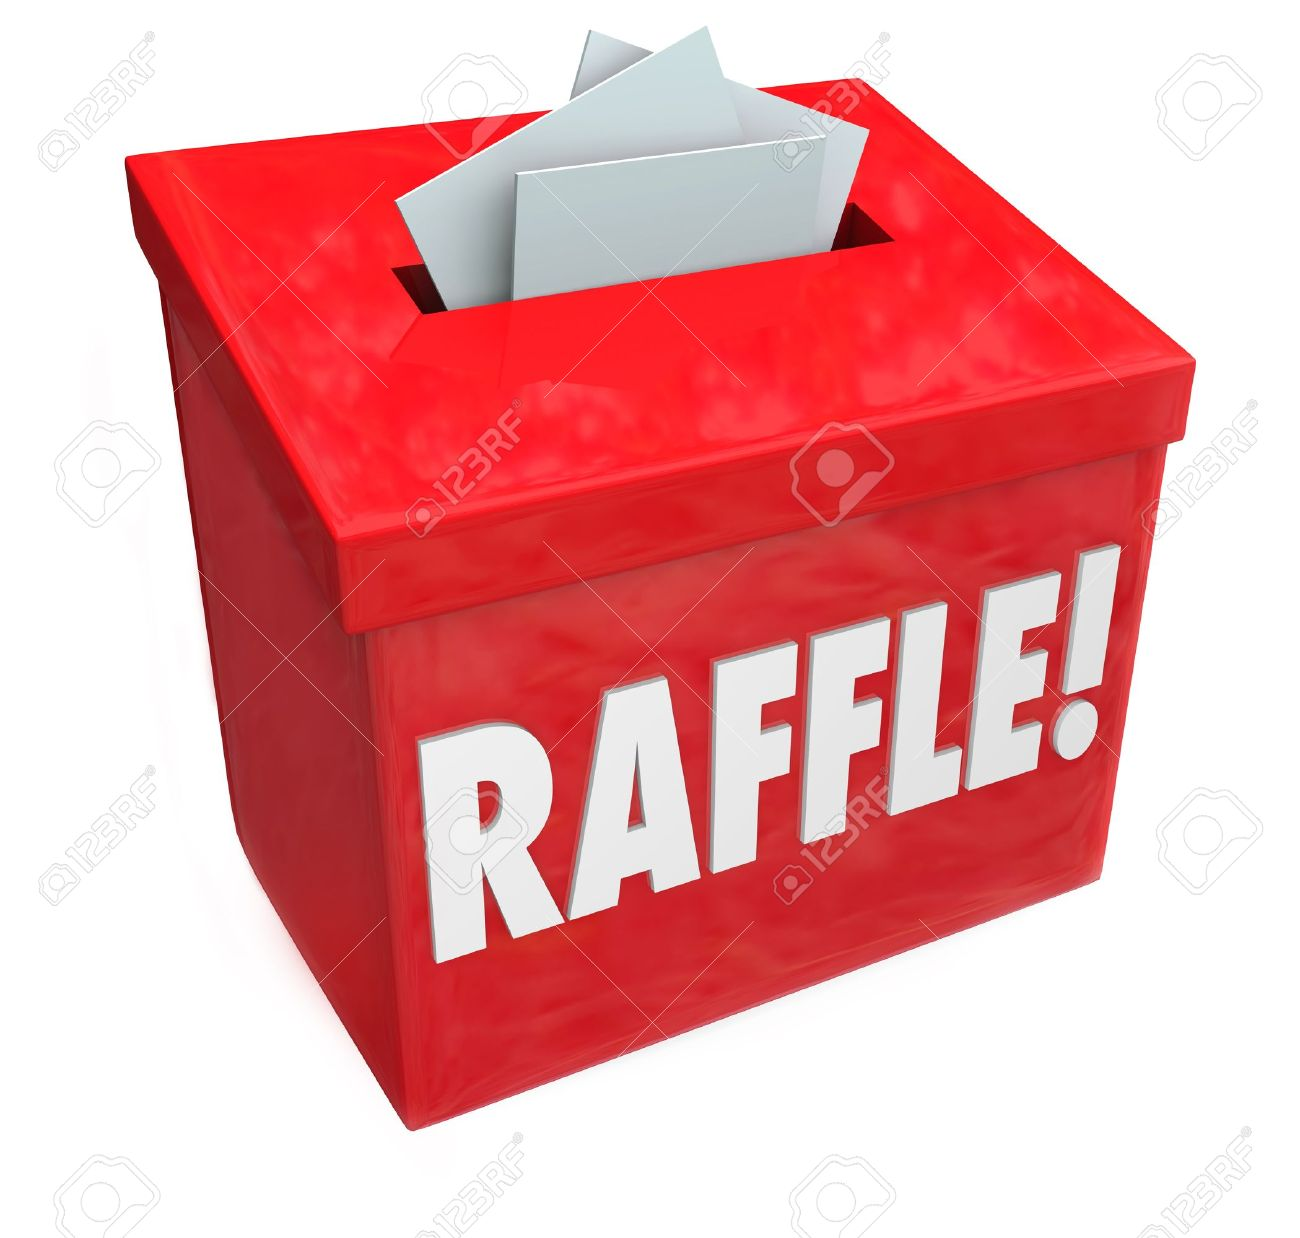 raffle stock vector illustration and royalty raffle clipart raffle dropping tickets inside a raffle box for a 50 50 or other fundraising